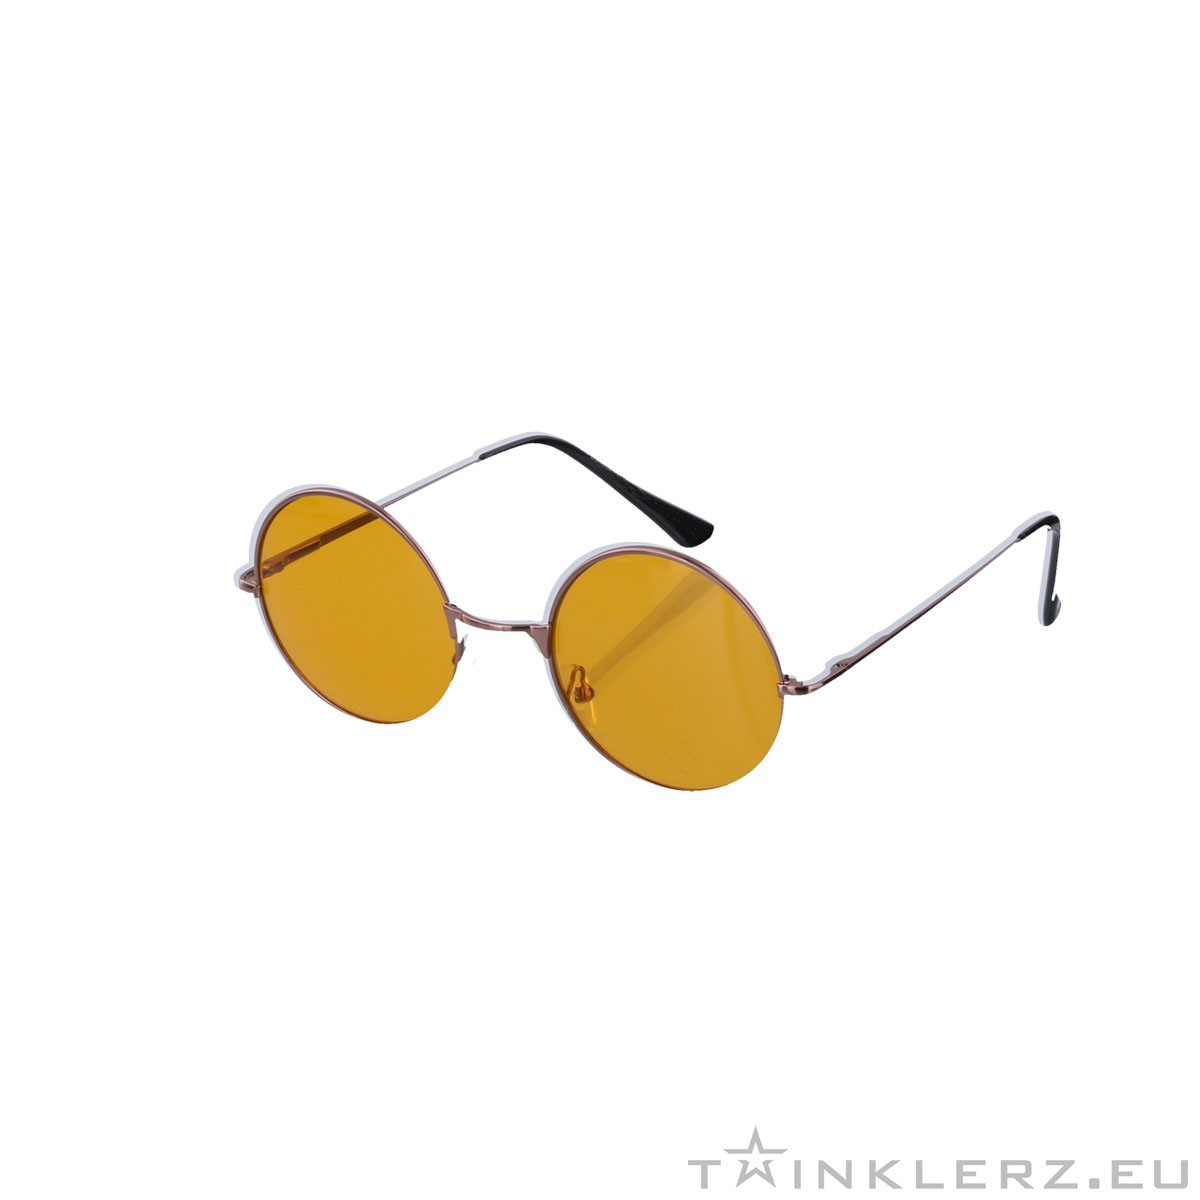 Small round golden sunglasses - yellow colored glasses